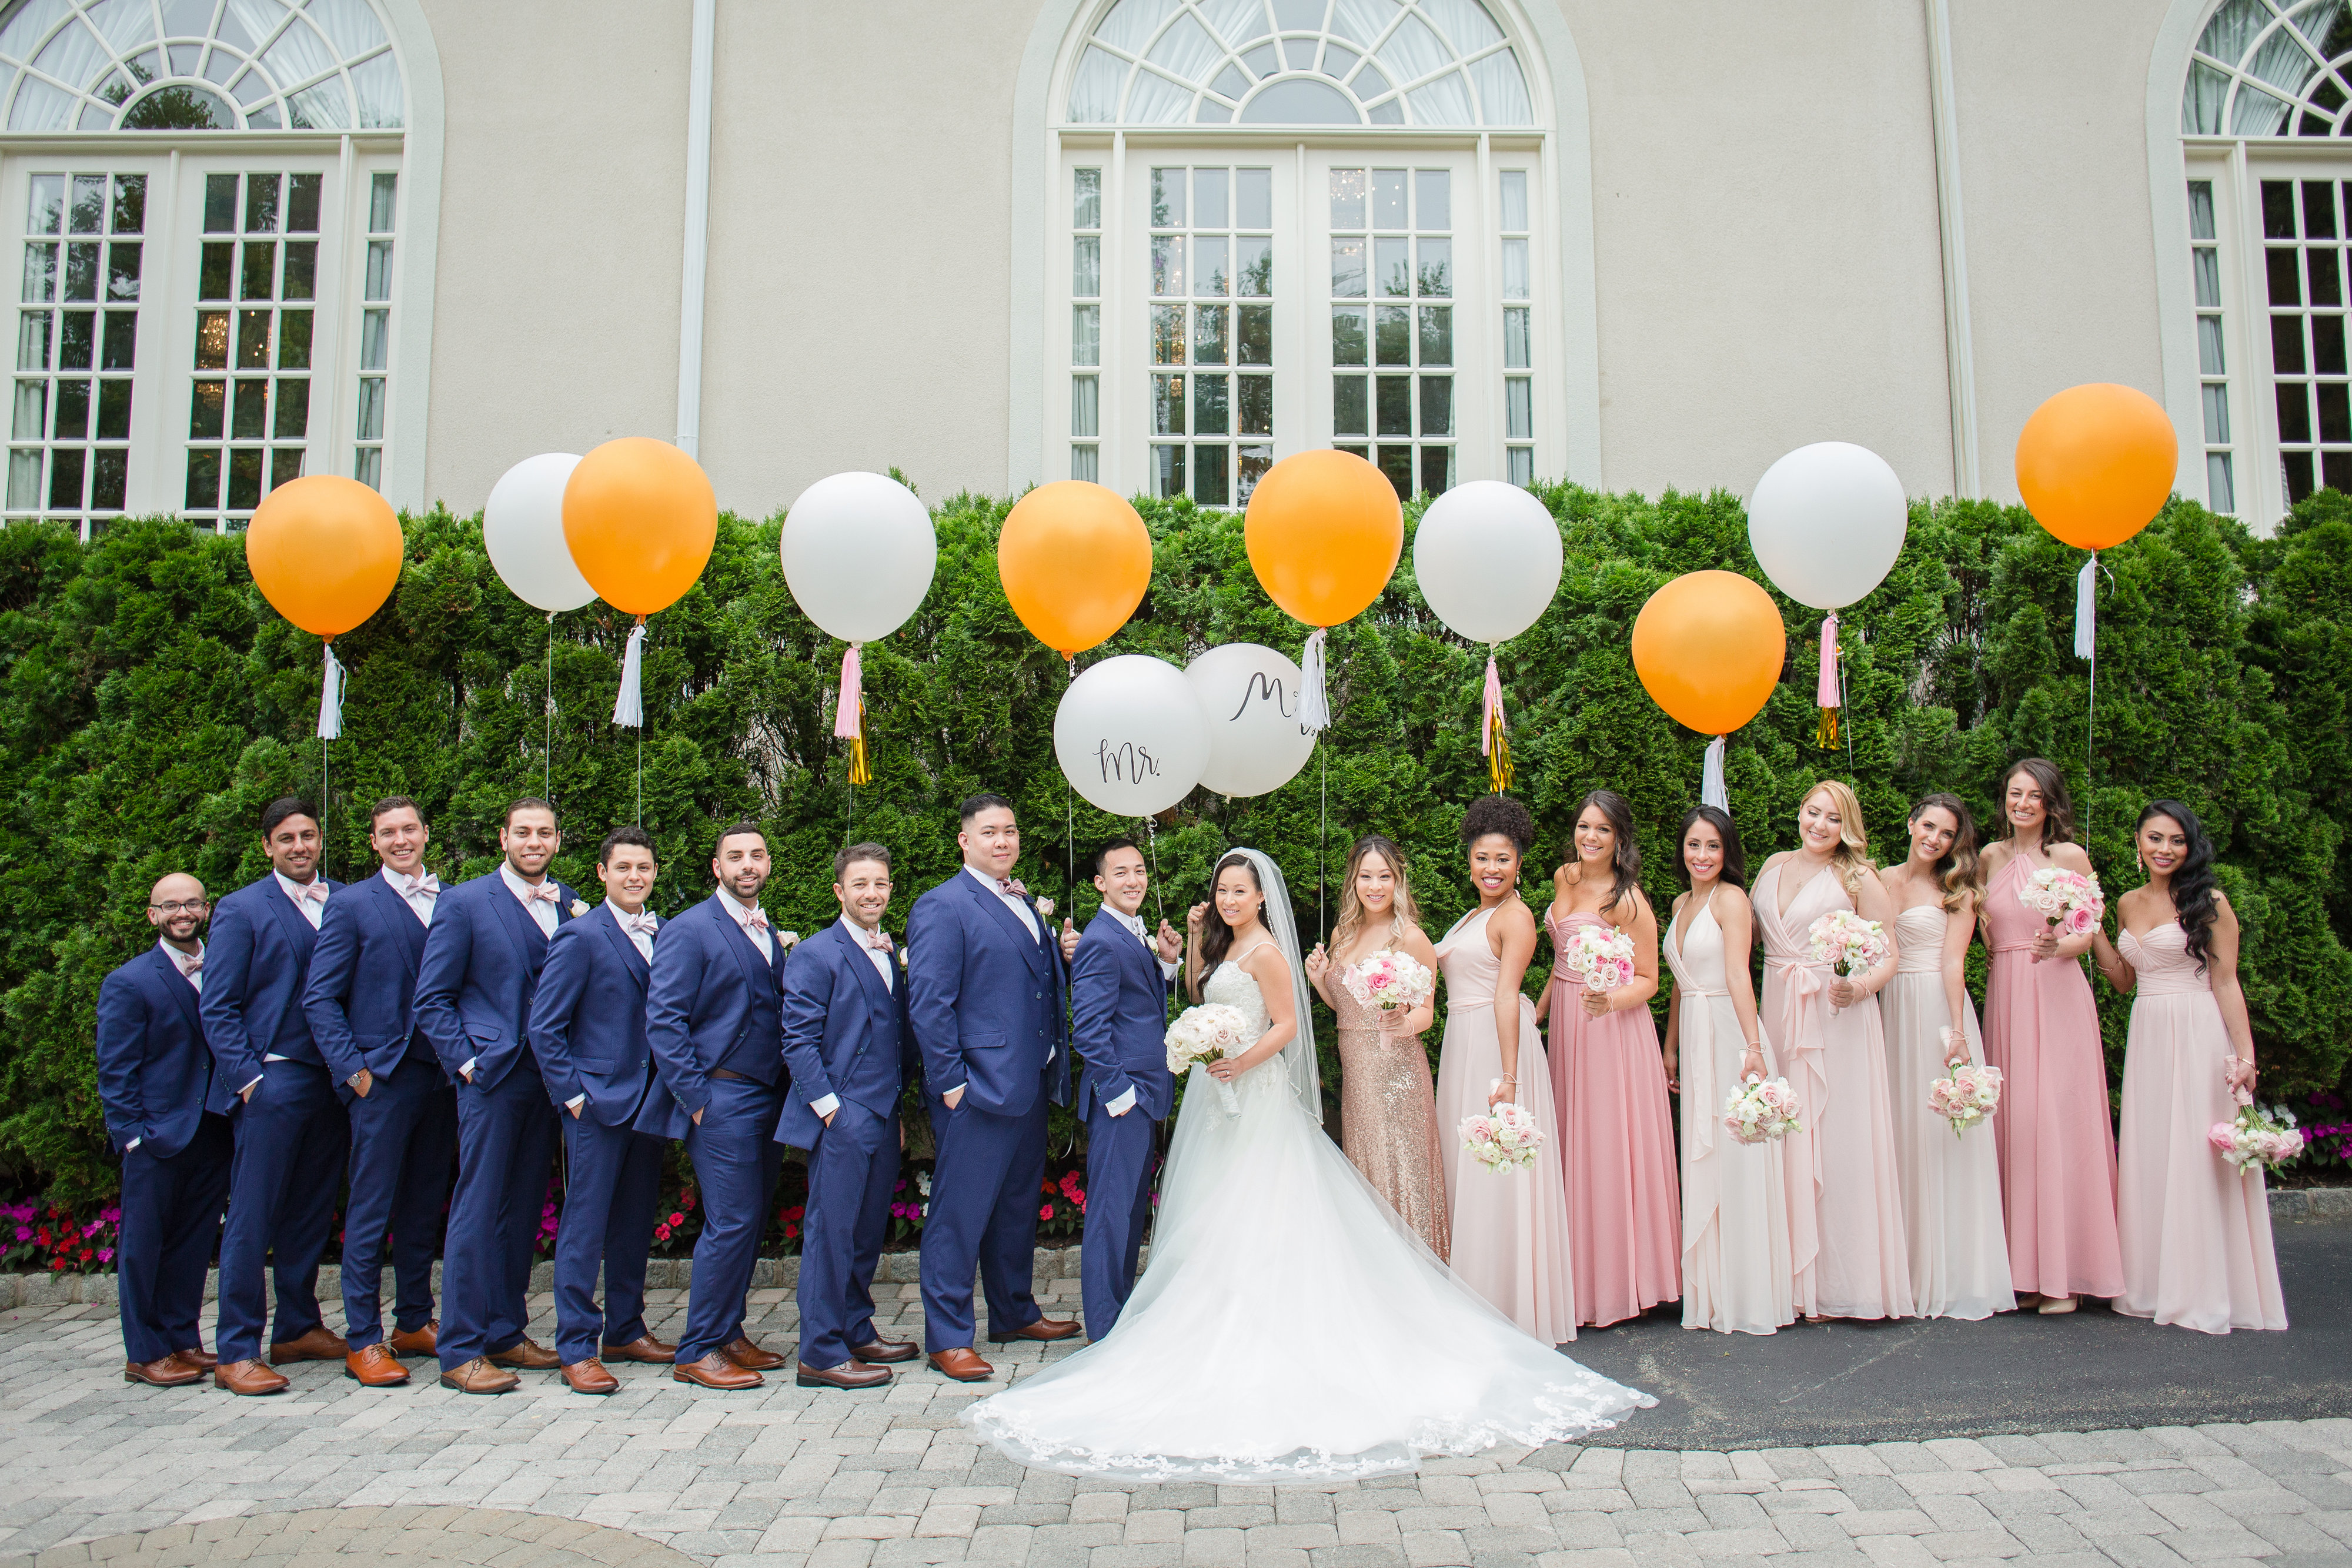 Lovely Pink & Gold Wedding - The Crystal Plaza